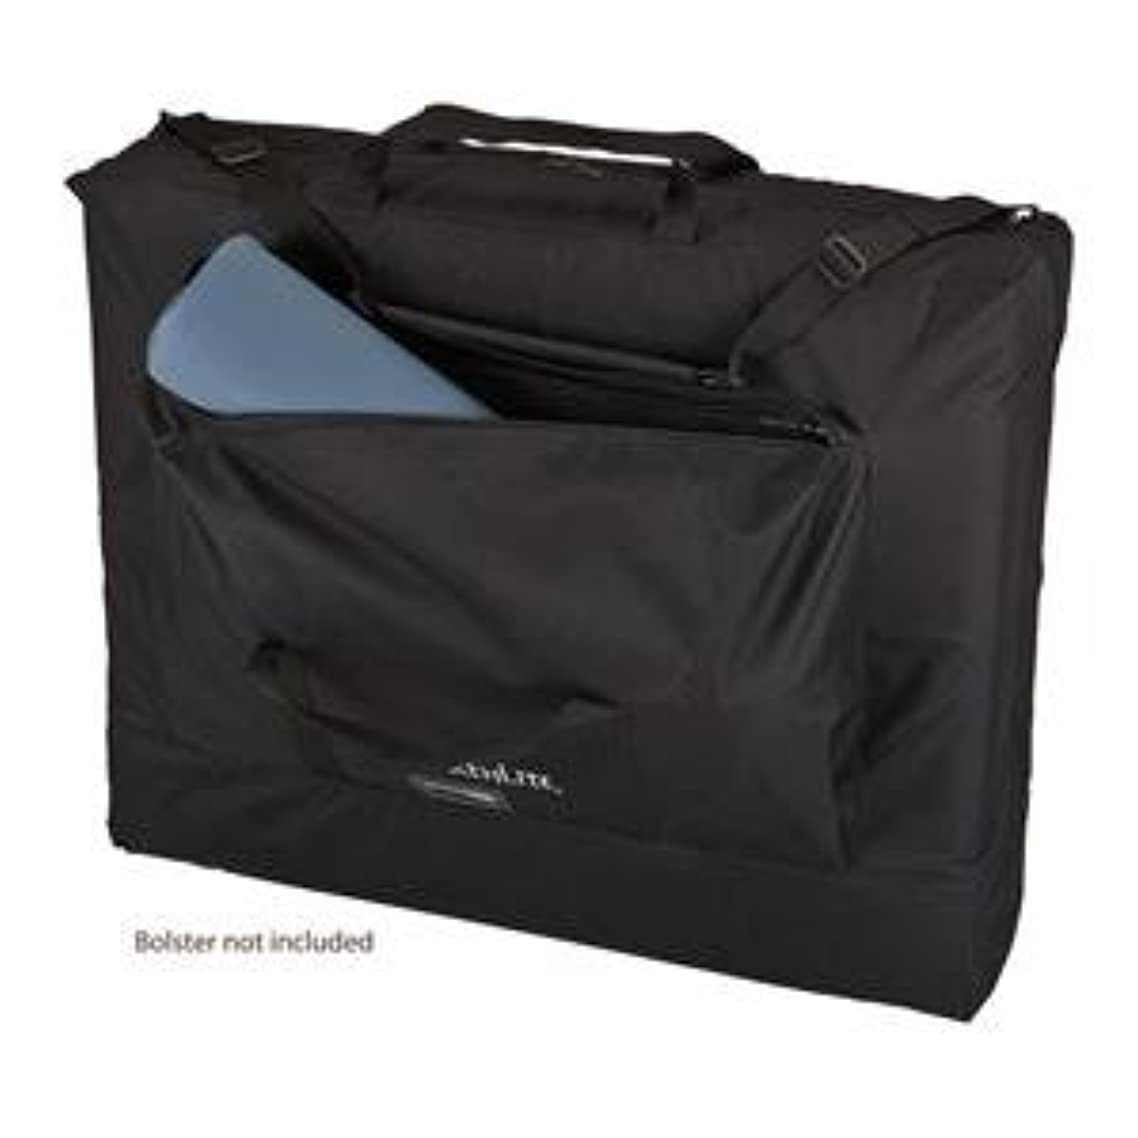 Earthlite Professional Carry Case